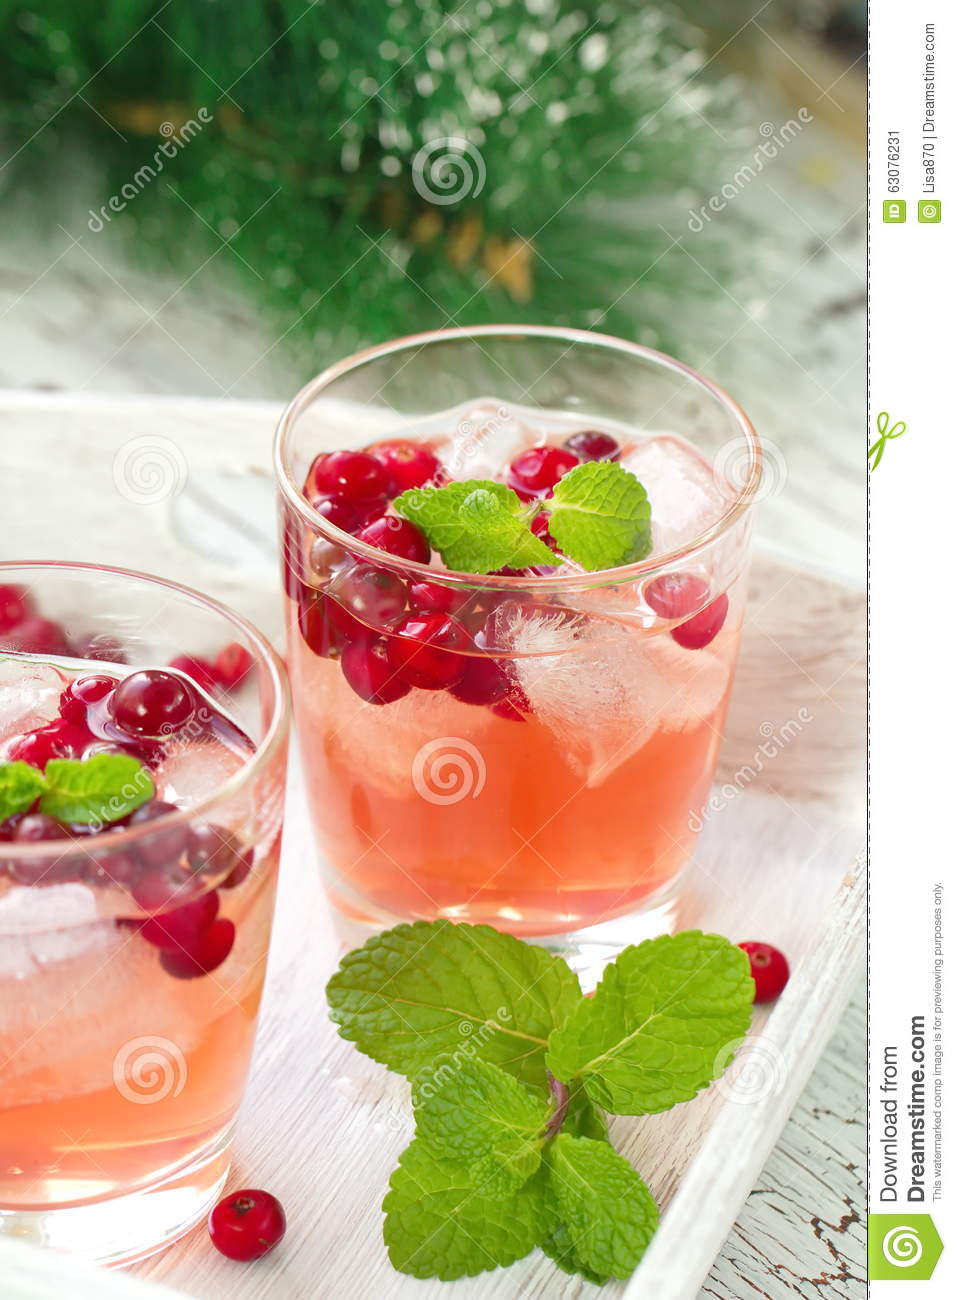 Download Cocktail D'alcool Avec Les Canneberges, La Vodka Et La Glace Image stock - Image du baie, fruité: 63076231